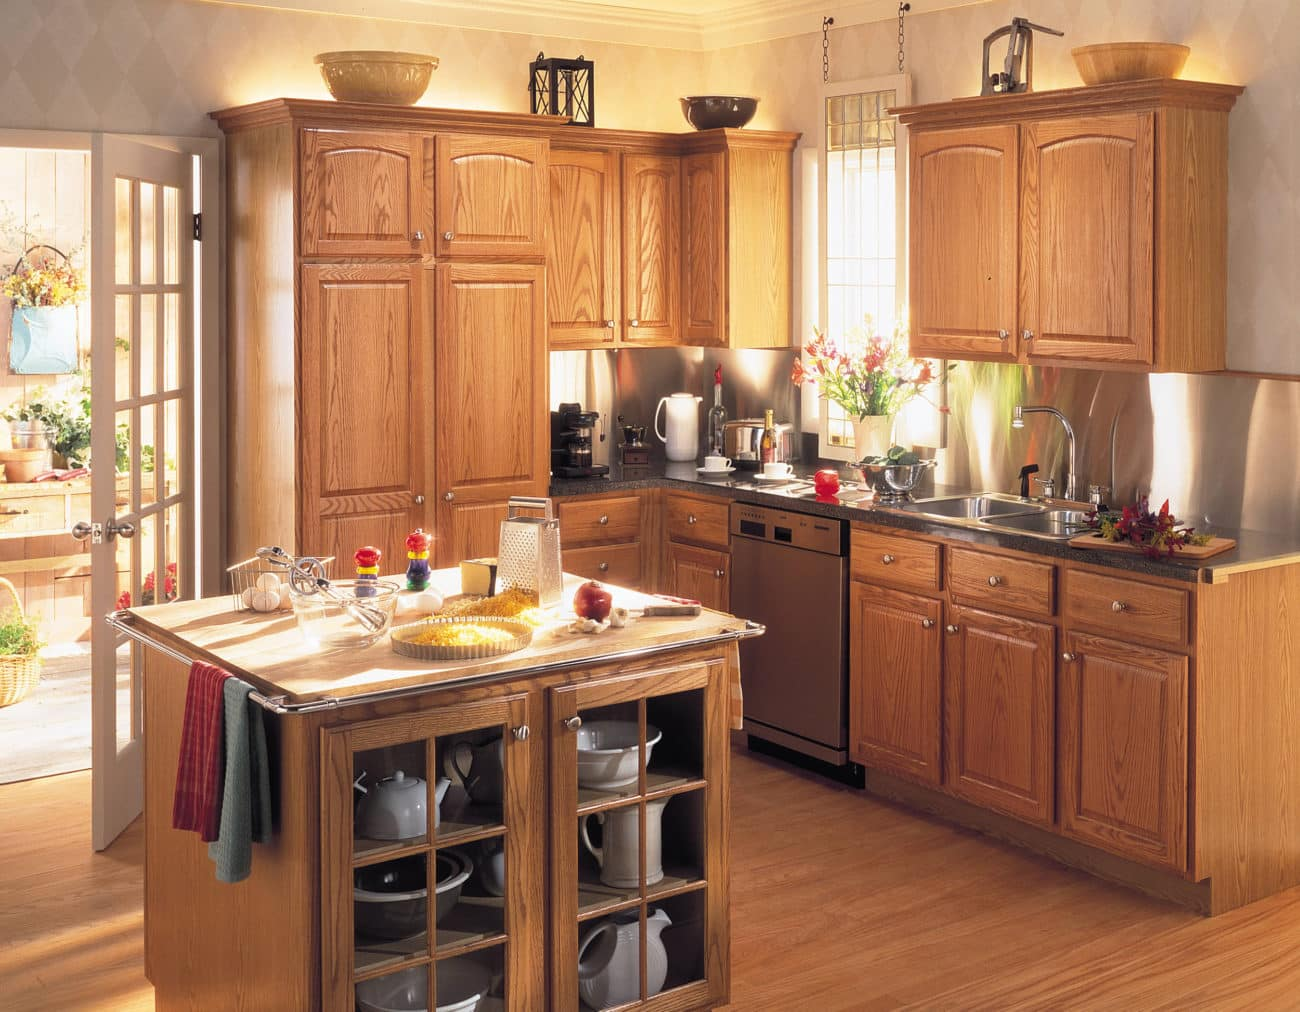 Masterbrand Kitchen Cabinets Best Selection Of Cabinets In Albuquerque Aesops Gables 505 275